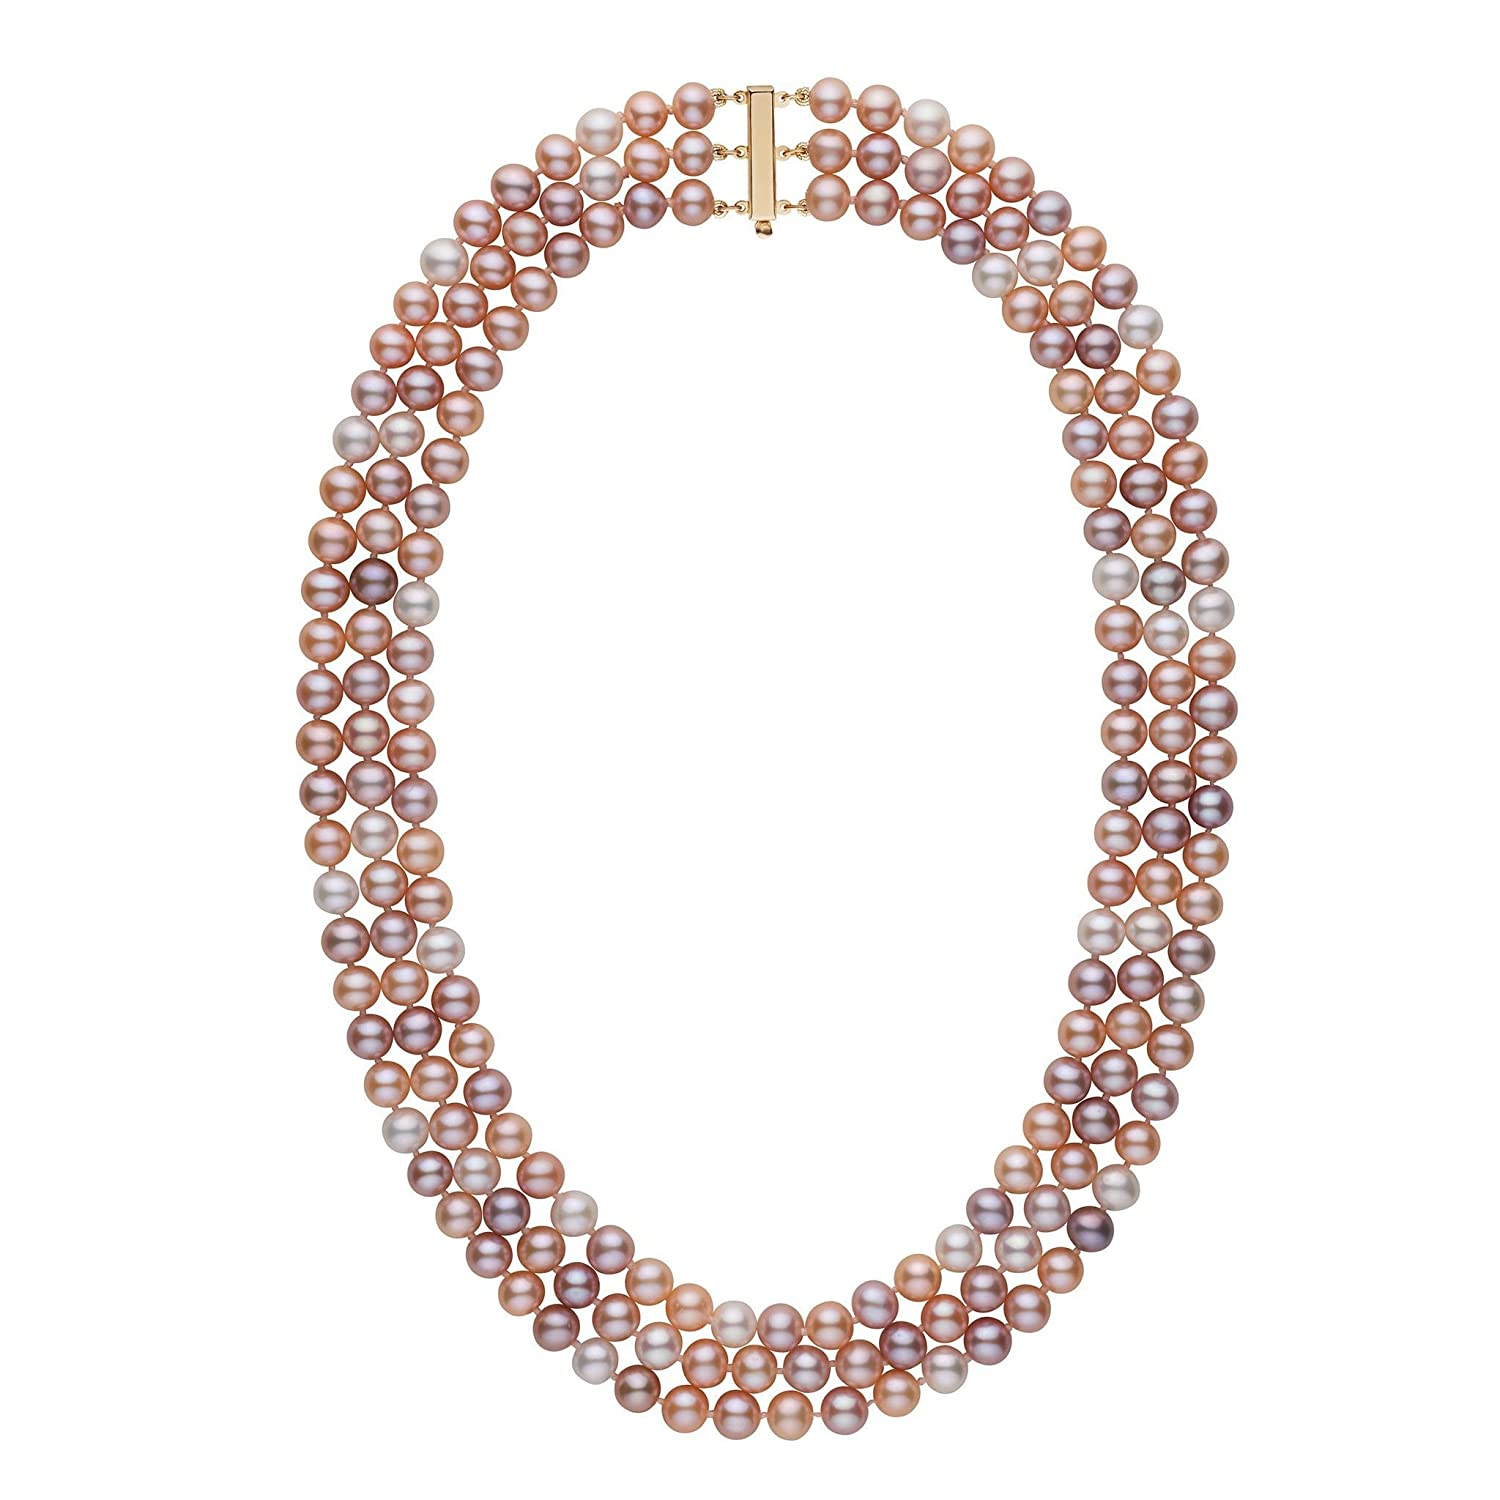 6.5-7.0 mm Triple-Strand AA Multicolor Freshwater Cultured Pearl Necklace